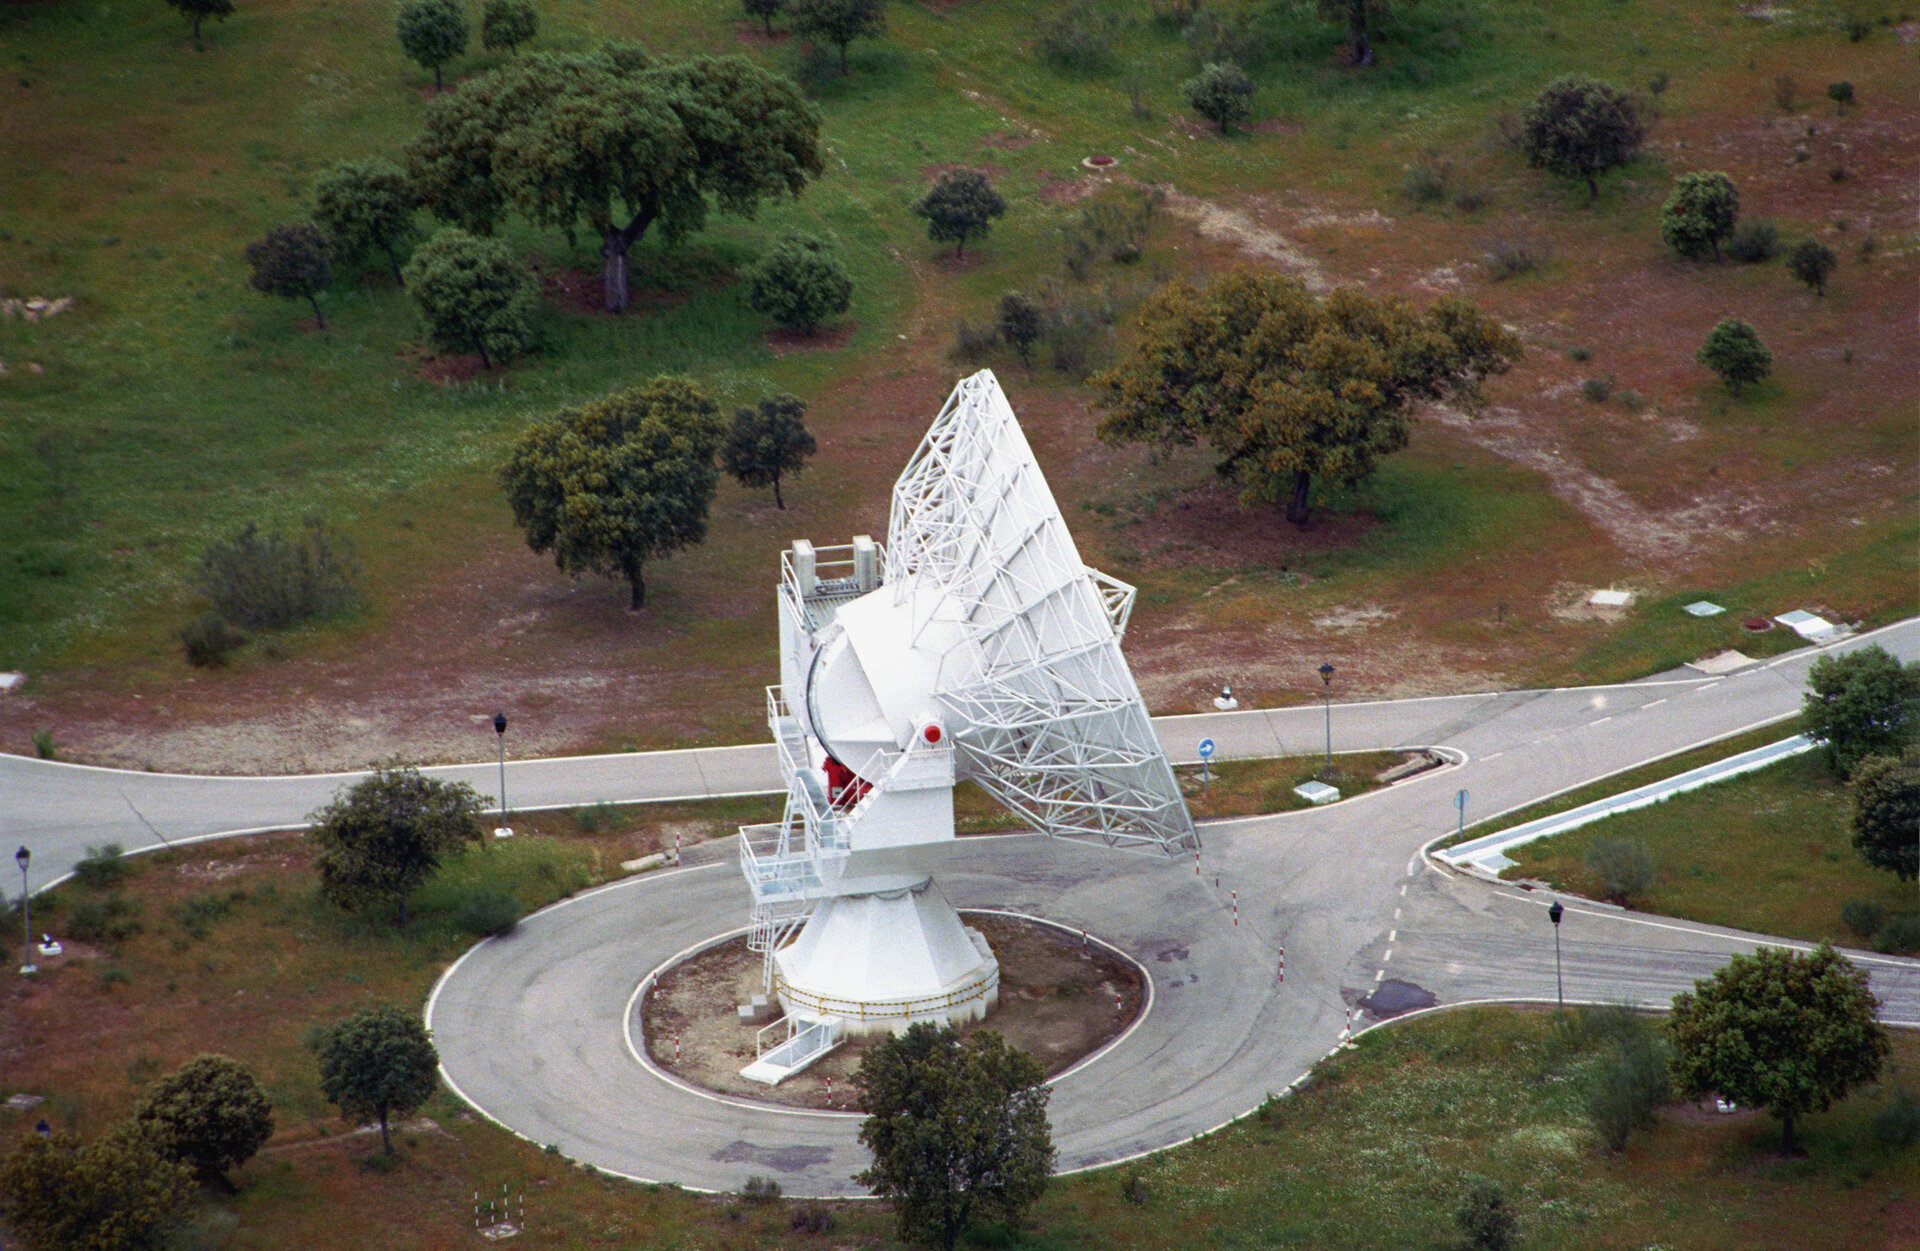 The Villafranca  VIL-1 15-m S-band antenna